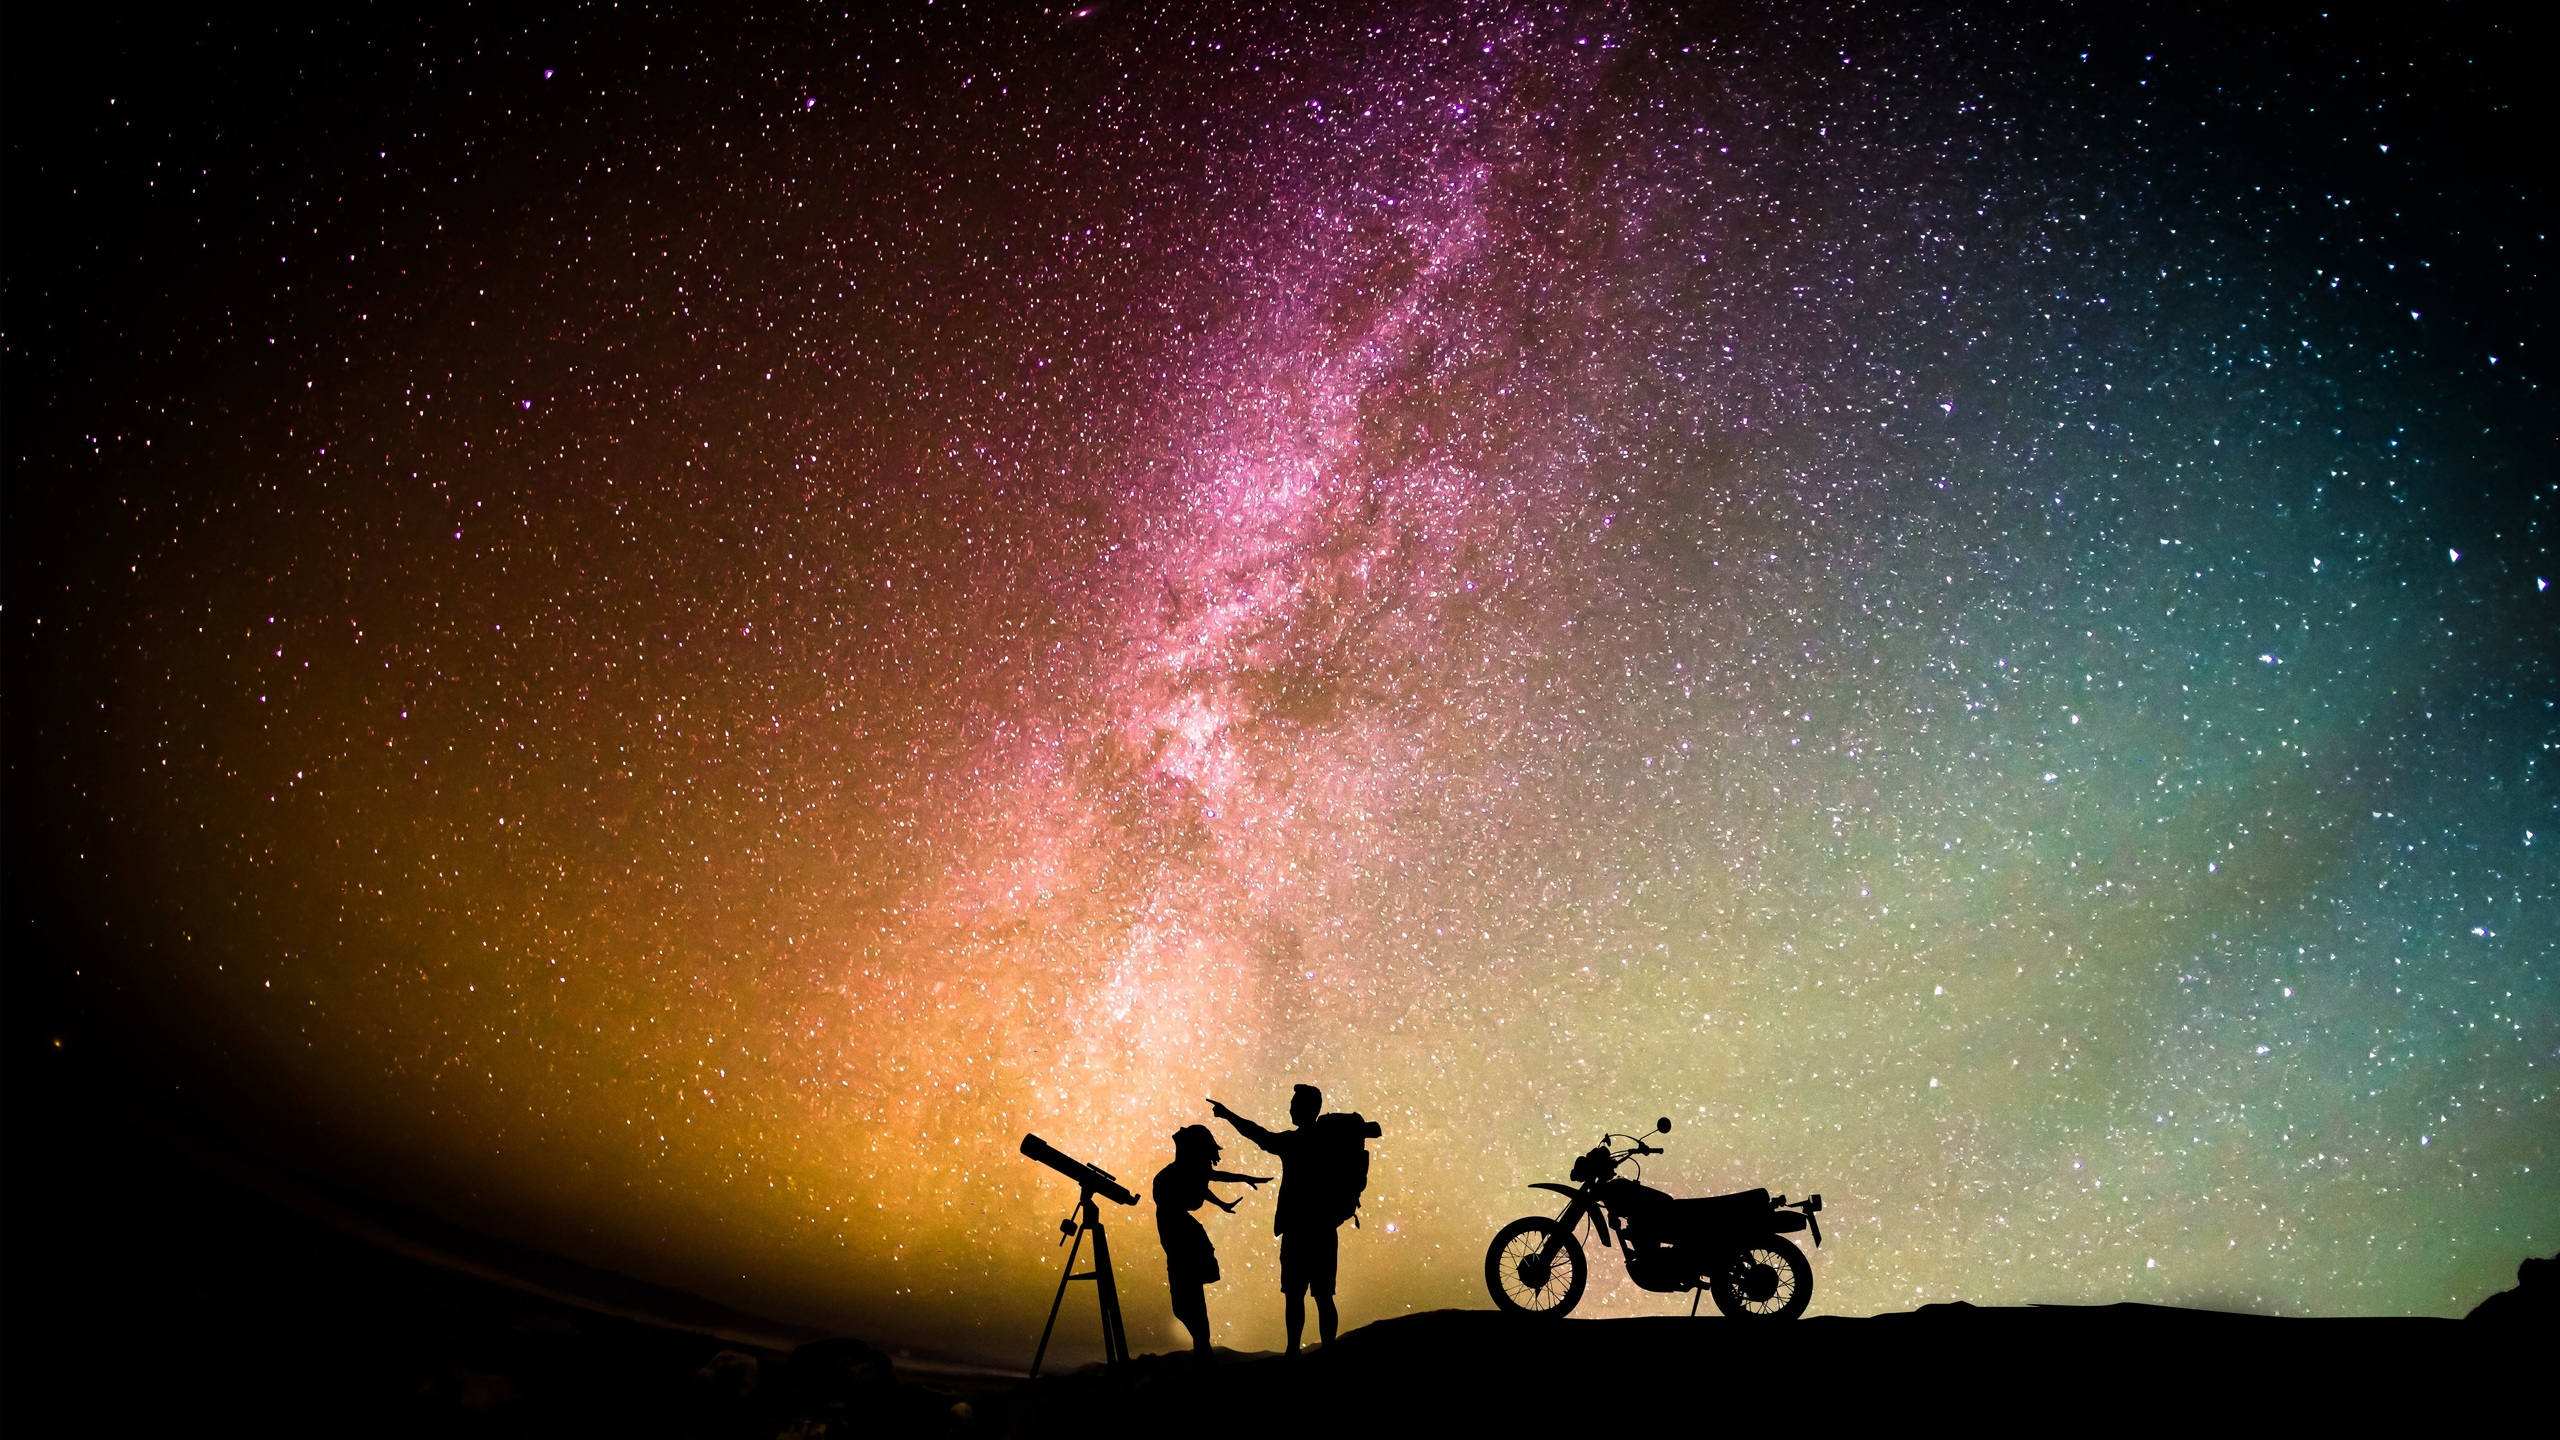 couple-motorcylist-telescope-aurora-sky-5s.jpg